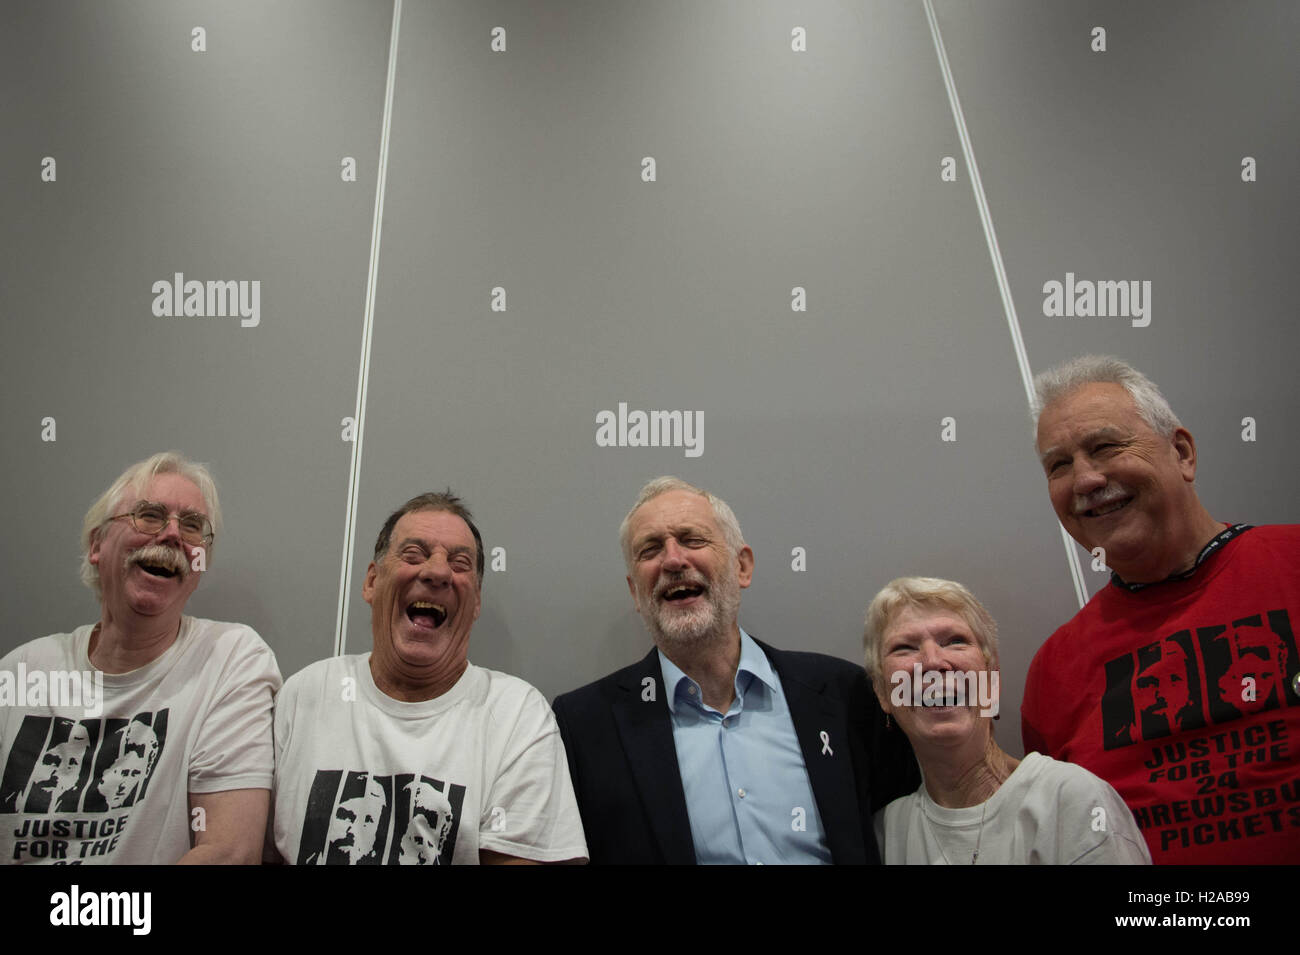 Labour leader Jeremy Corbyn (centre)tours the exhibition stands and meets supporters during the second day of the - Stock Image